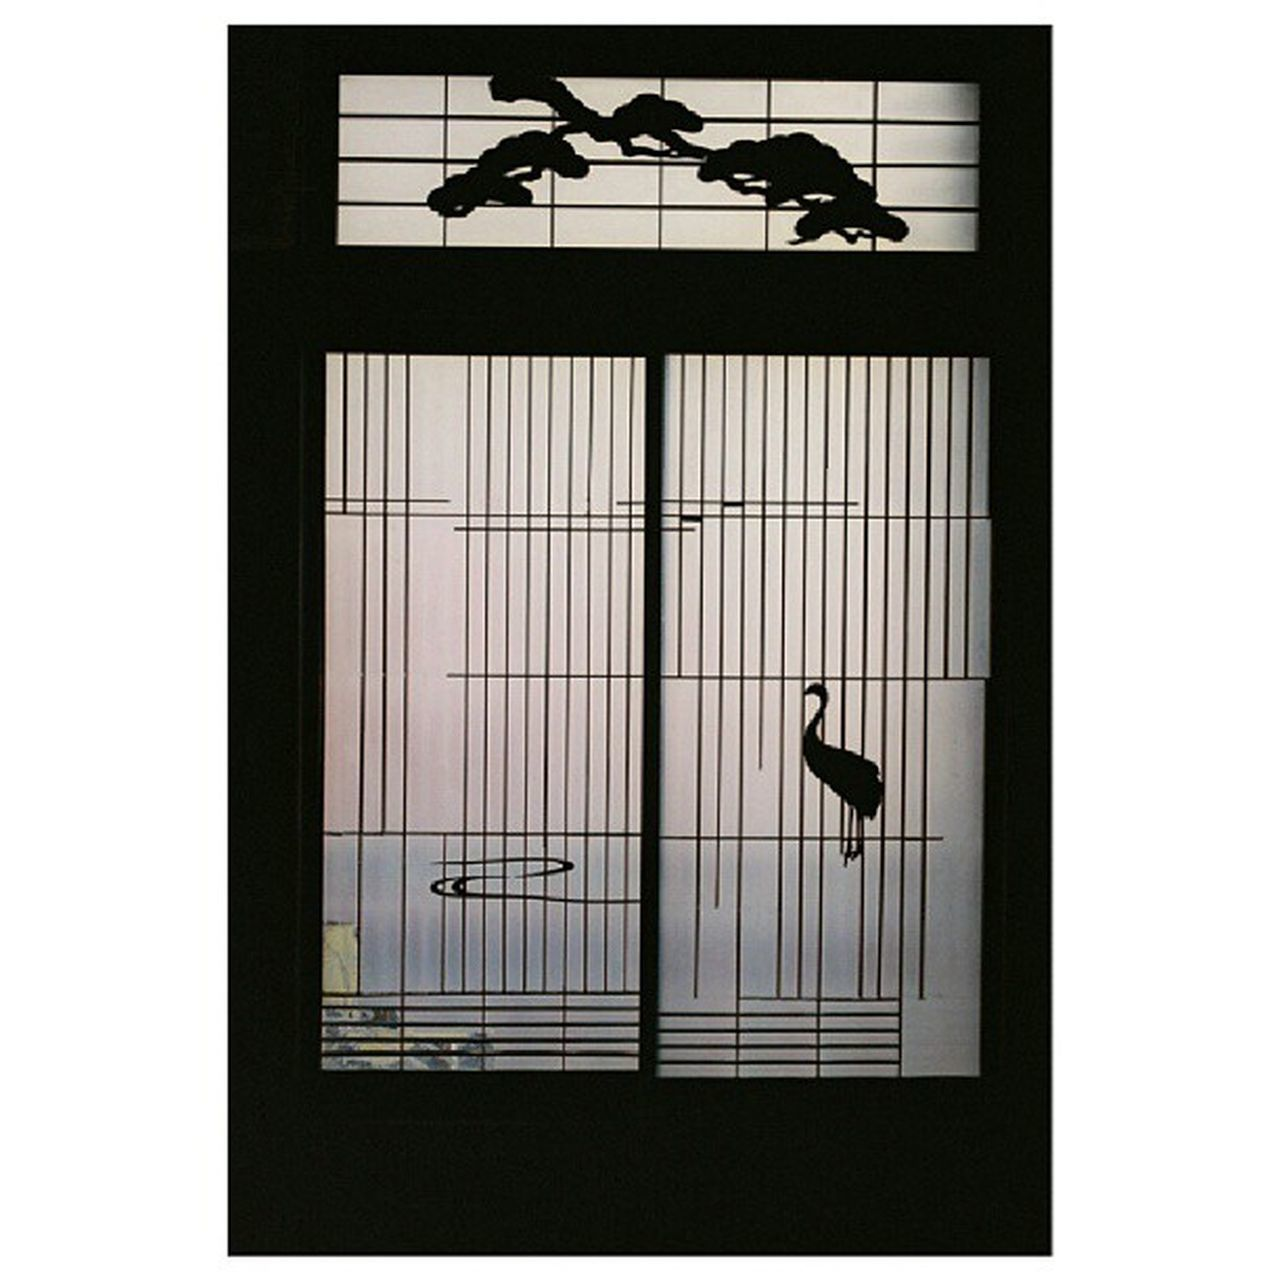 silhouette, indoors, window, one animal, built structure, no people, day, bird, architecture, hanging, low angle view